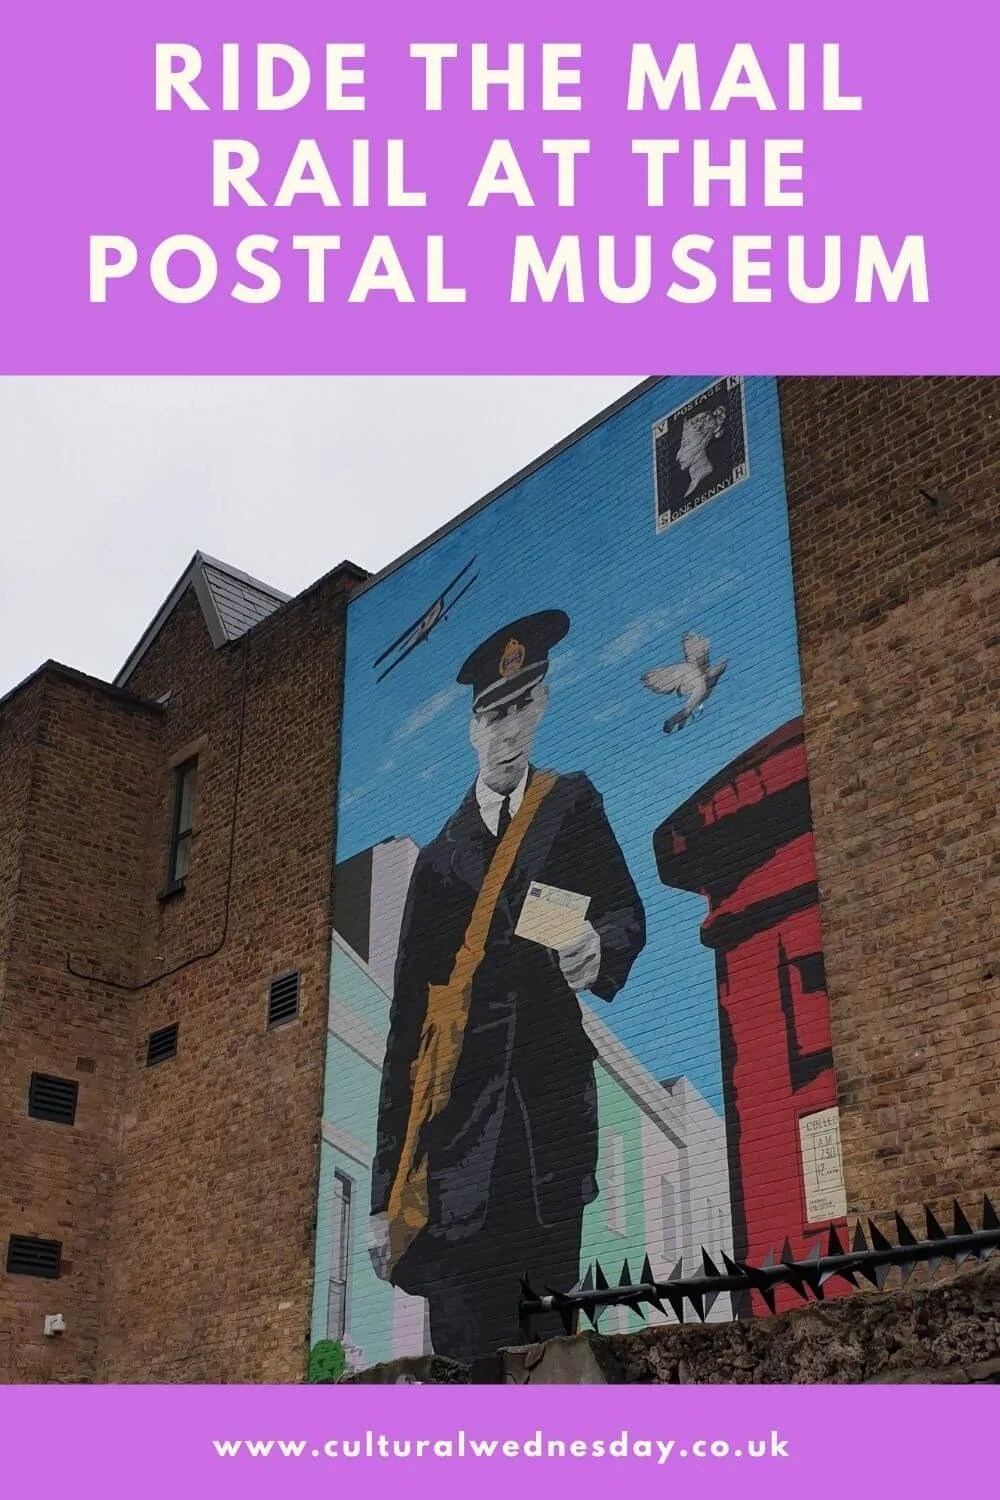 Take a ride on the train that used to ferry thousands of letters across London every day at the Postal Museum. #hiddenlondon #LondonDaysOut #LondonMuseum #LondonHistory